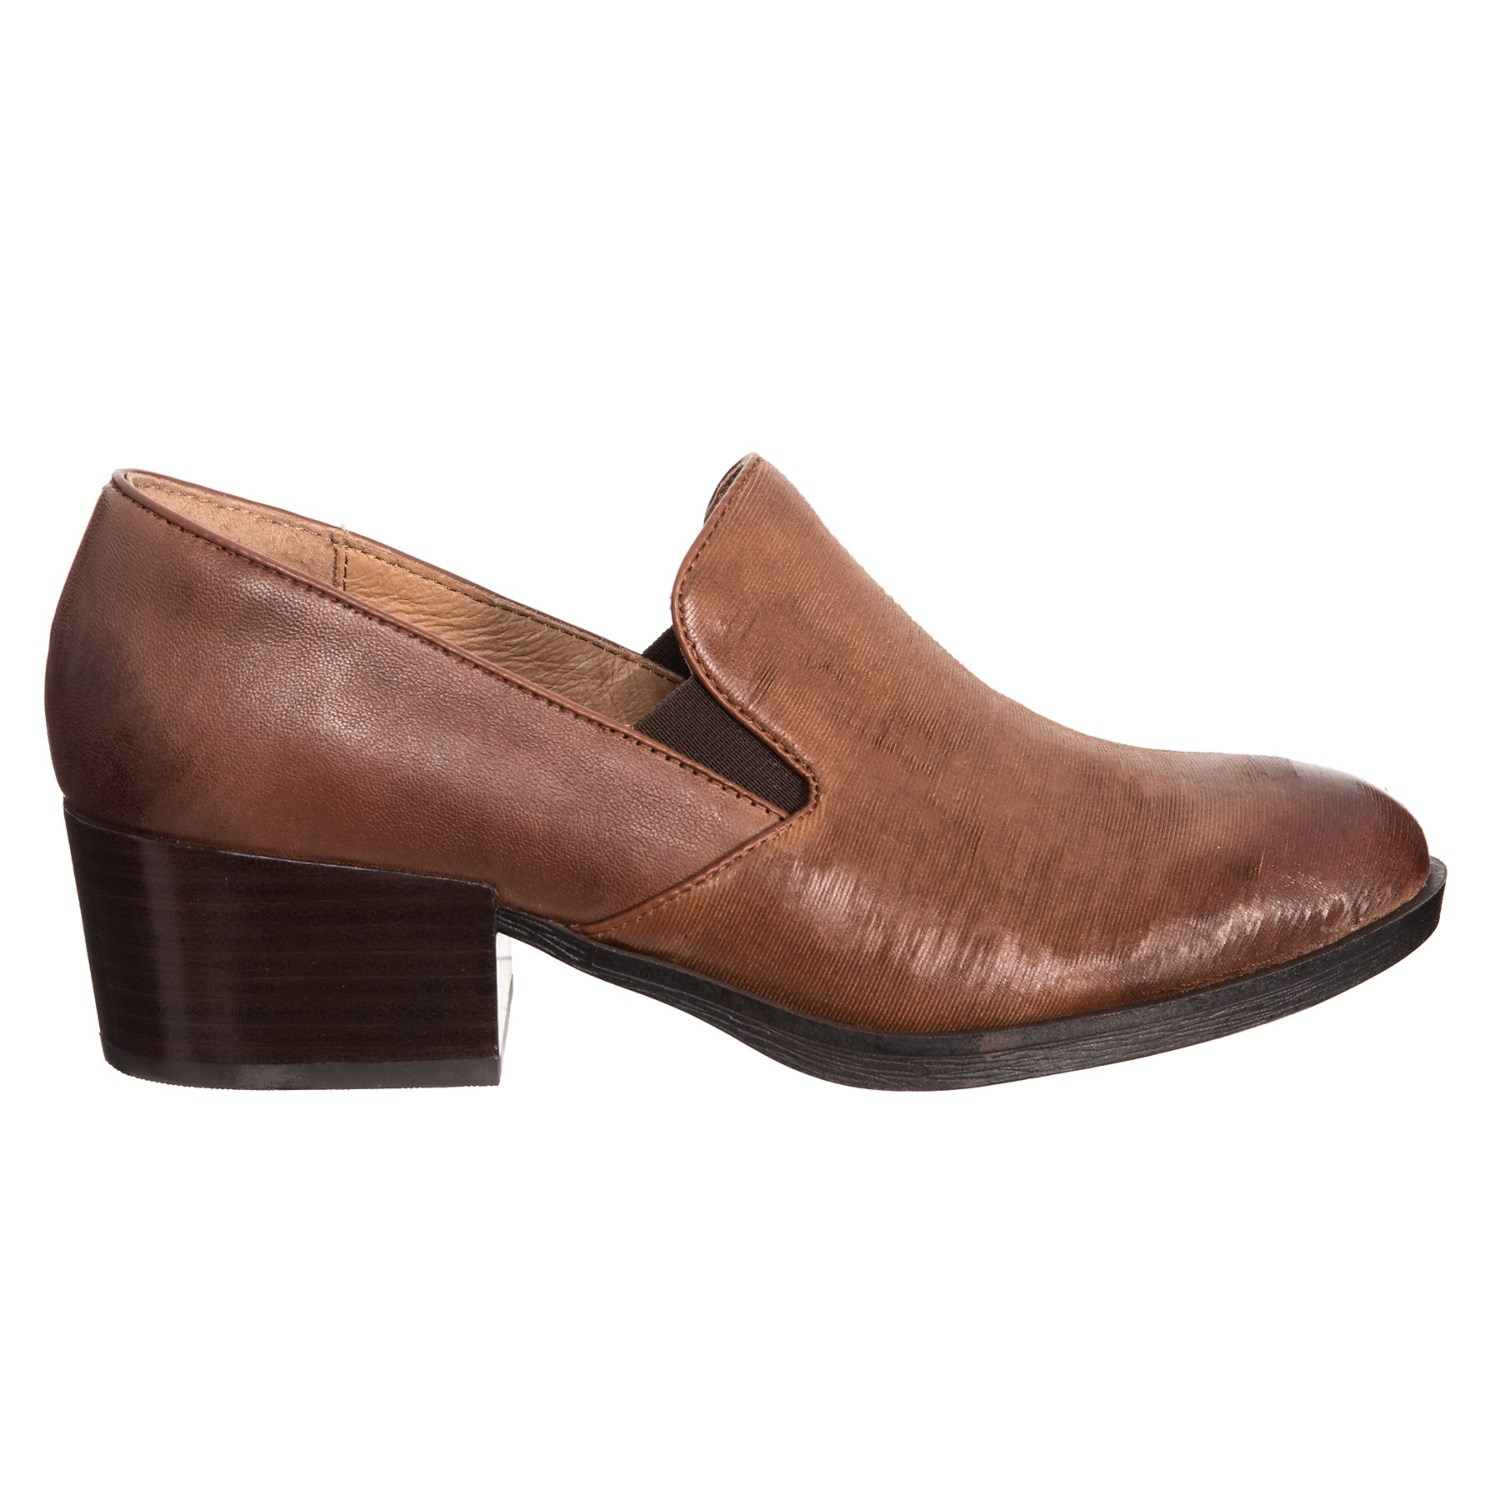 85505c30fd3 Sofft Velina Shoes (For Women) - Save 33%